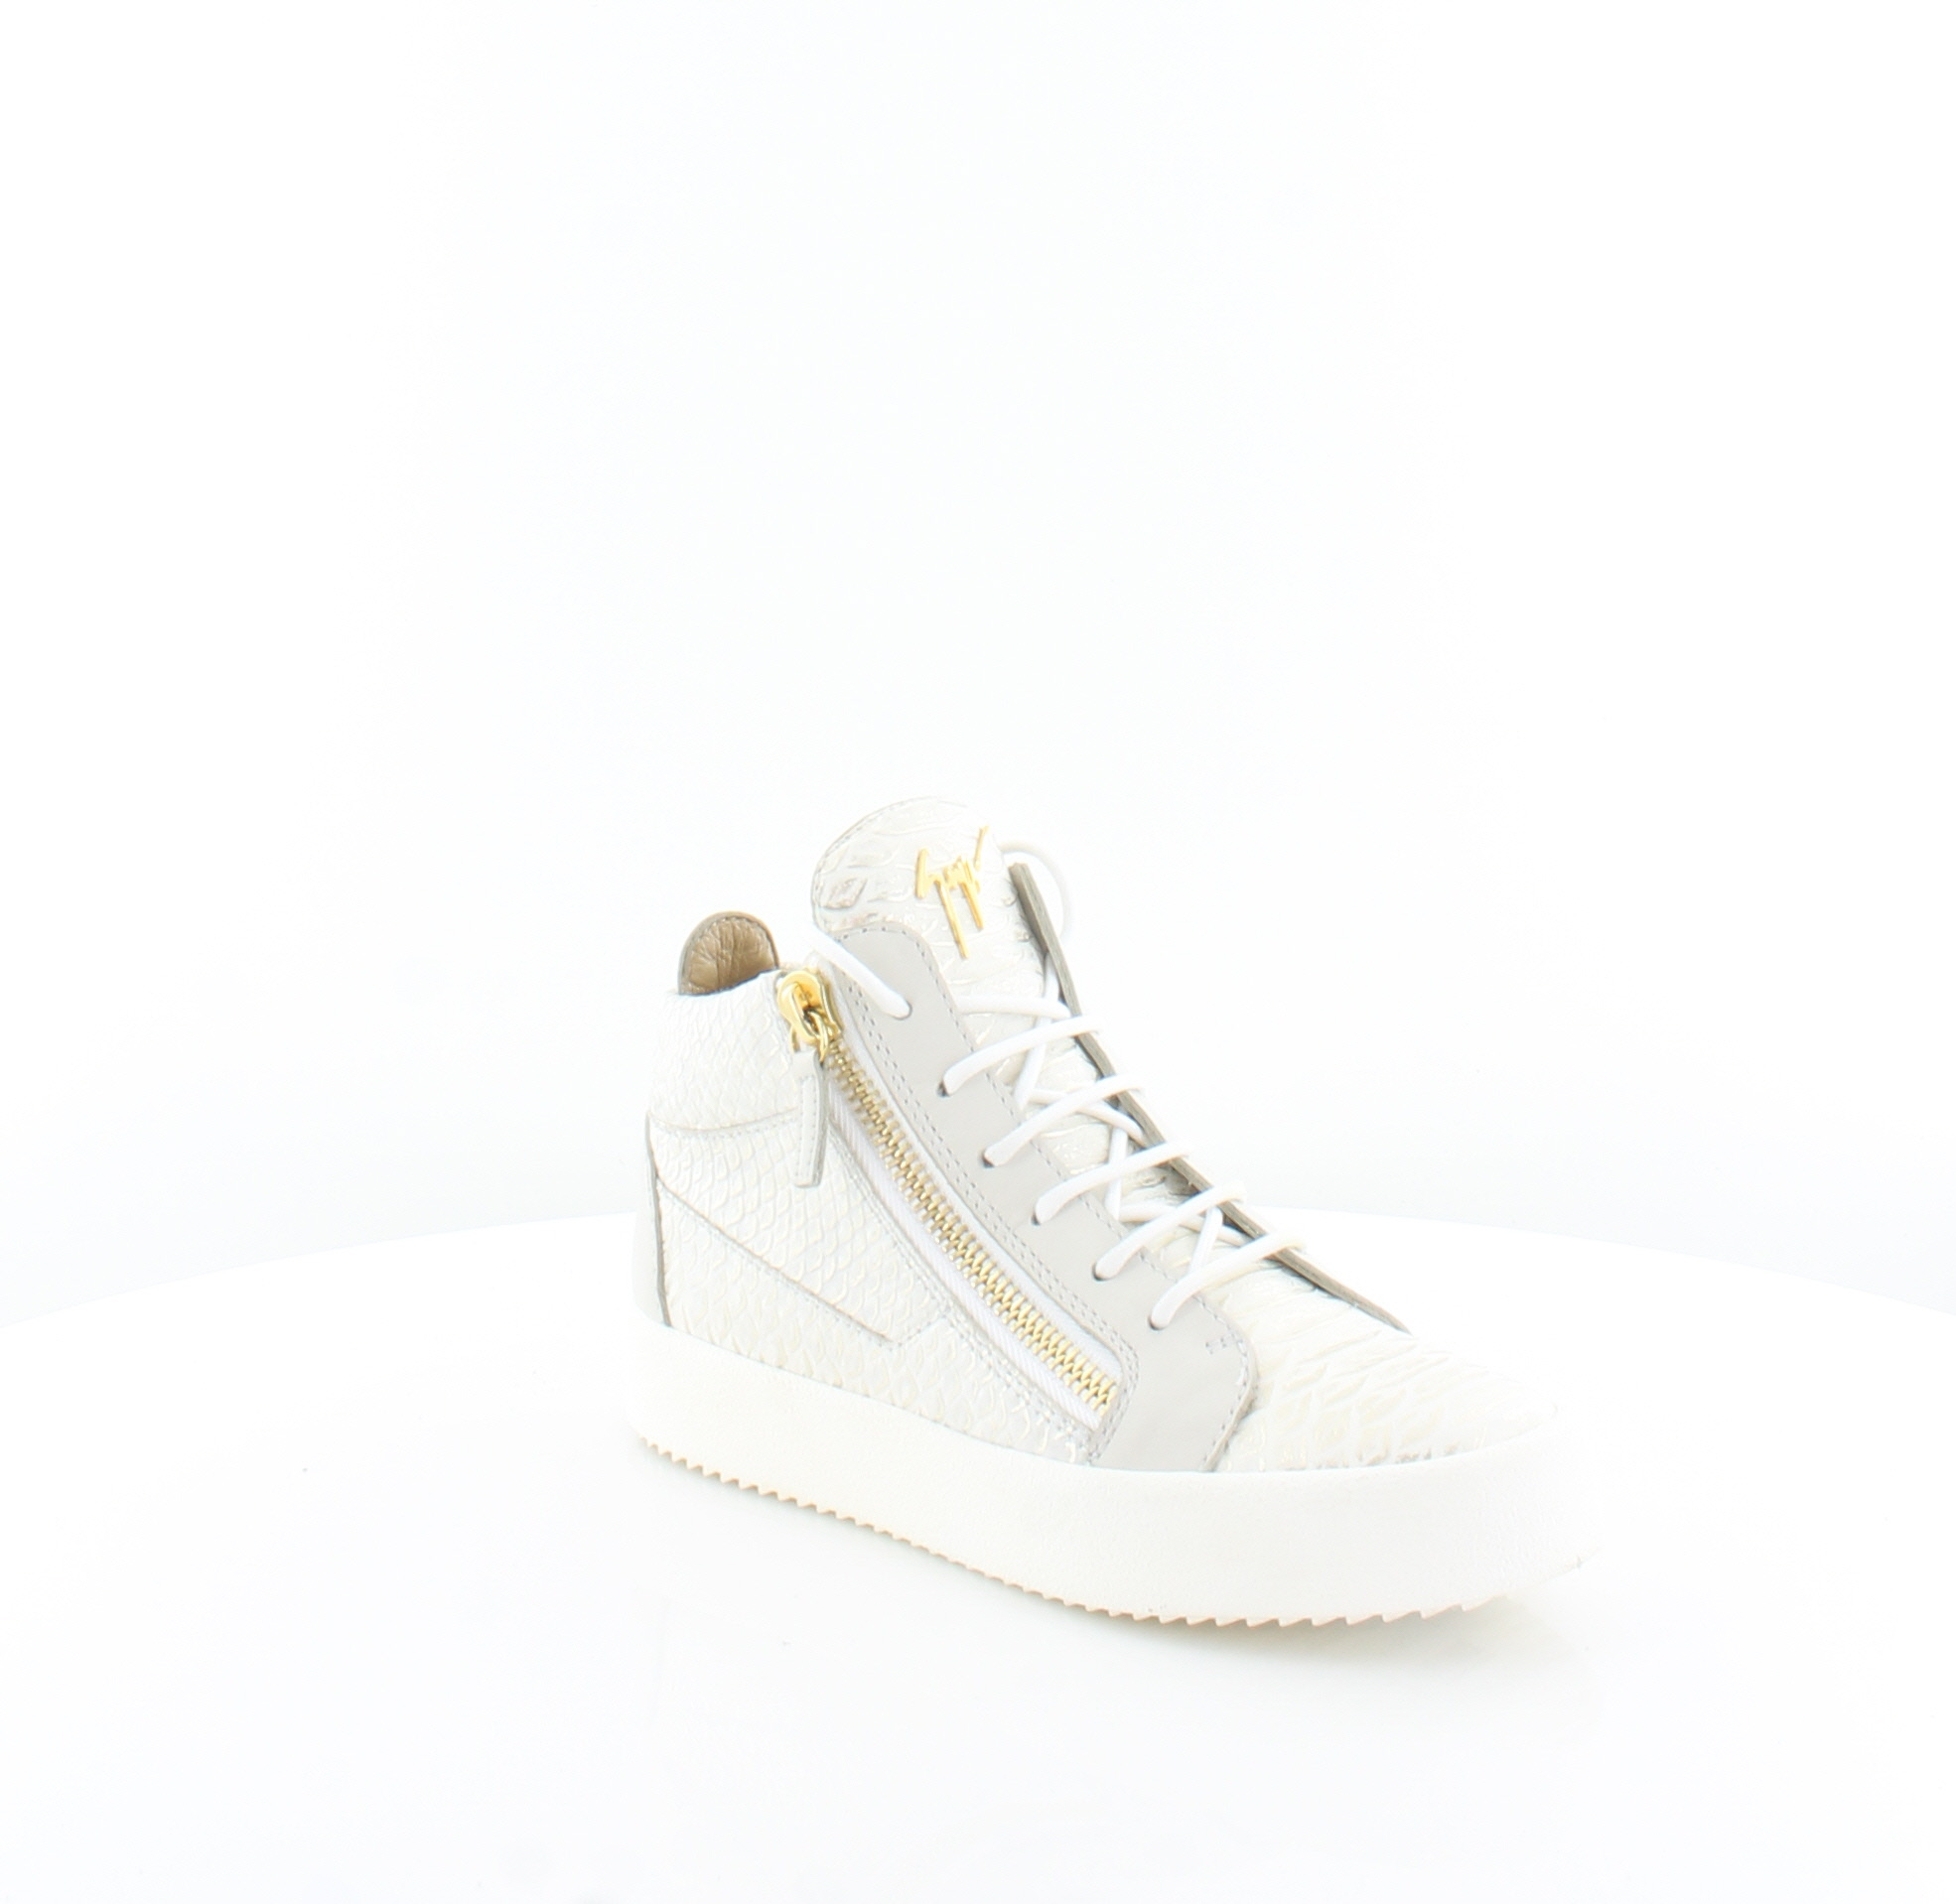 64cc9c459d4f8 Giuseppe Zanotti May London White Womens Shoes 6.5 M Fashion Sneakers MSRP  $750